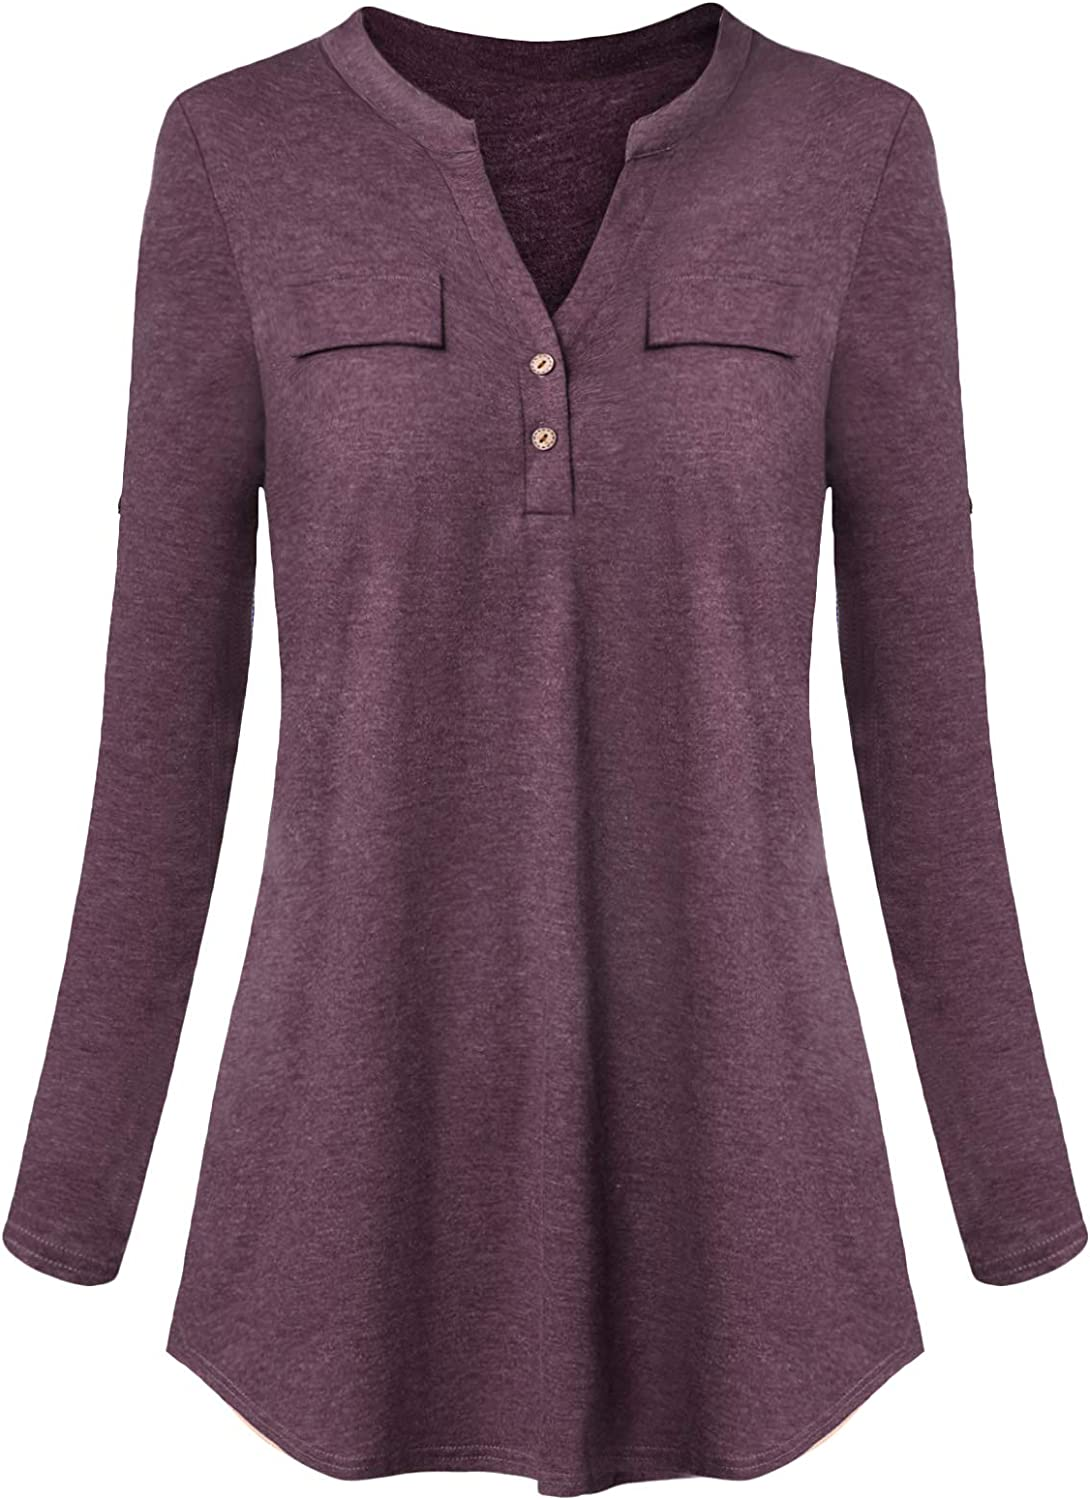 Mavis Laven Women's V Neck Henley Shirt Button Up Long Sleeve Tunic Tops Blouse